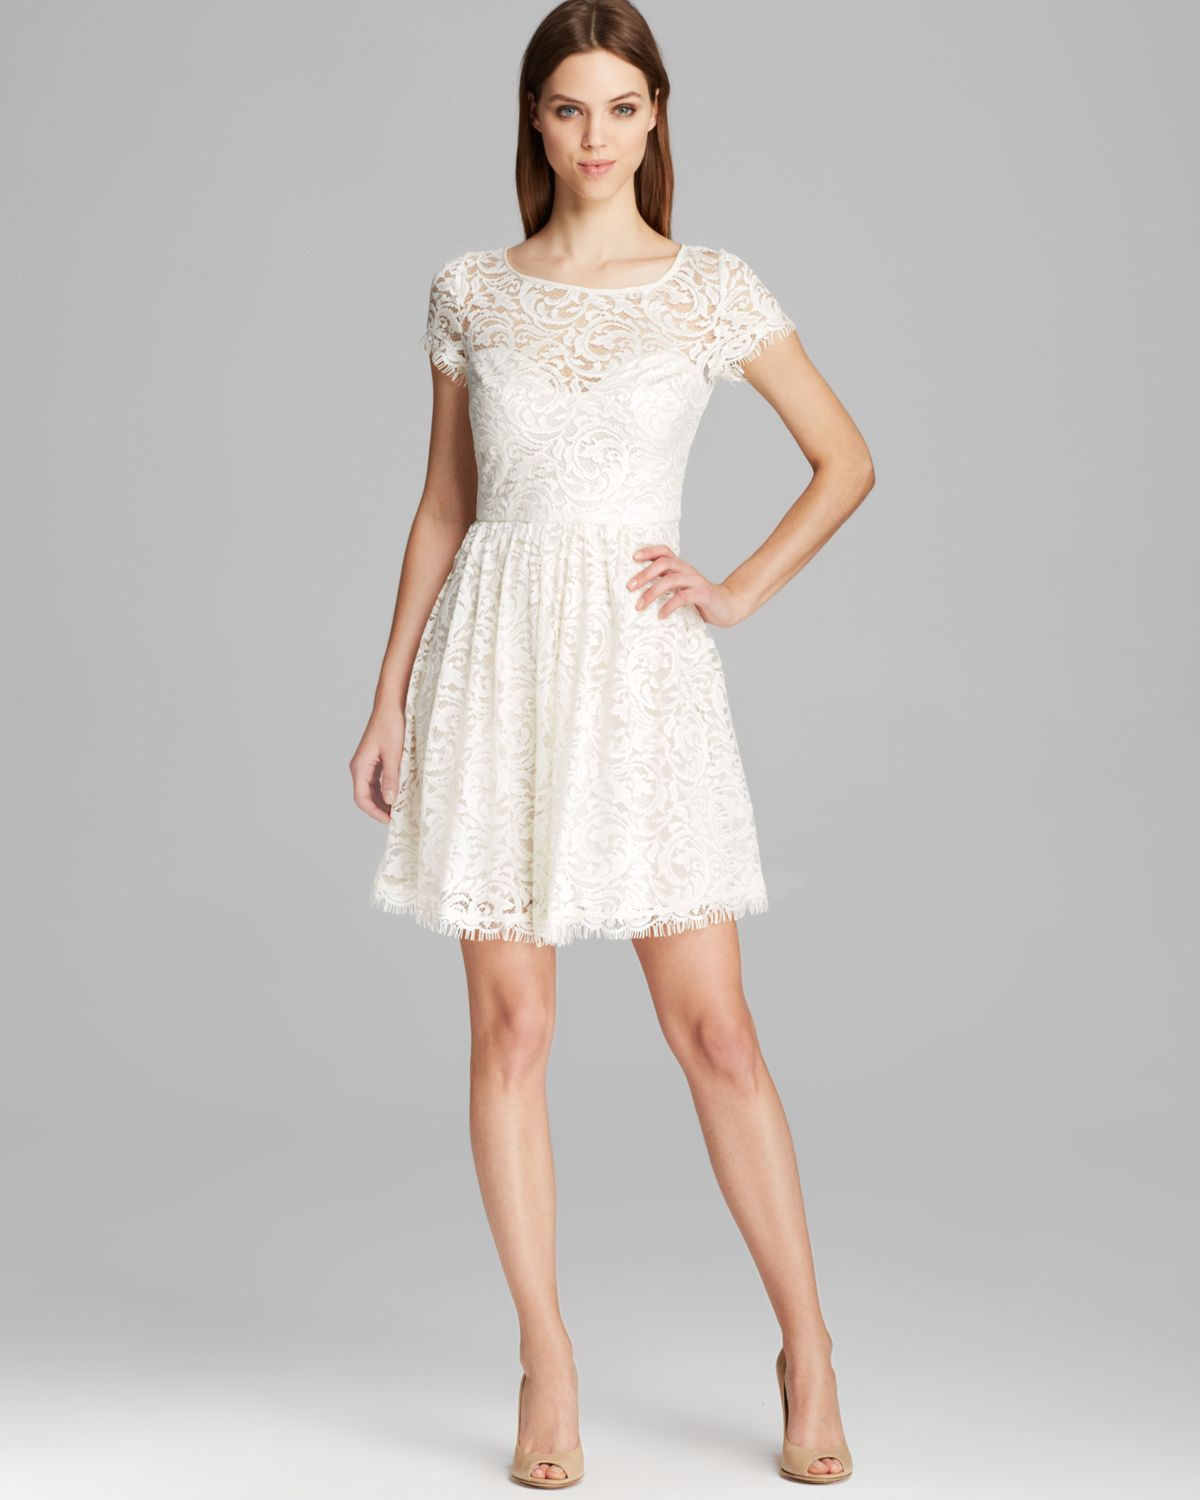 Nicole miller Dress Swirling Vines Short Sleeve Lace Fit and Flare ...